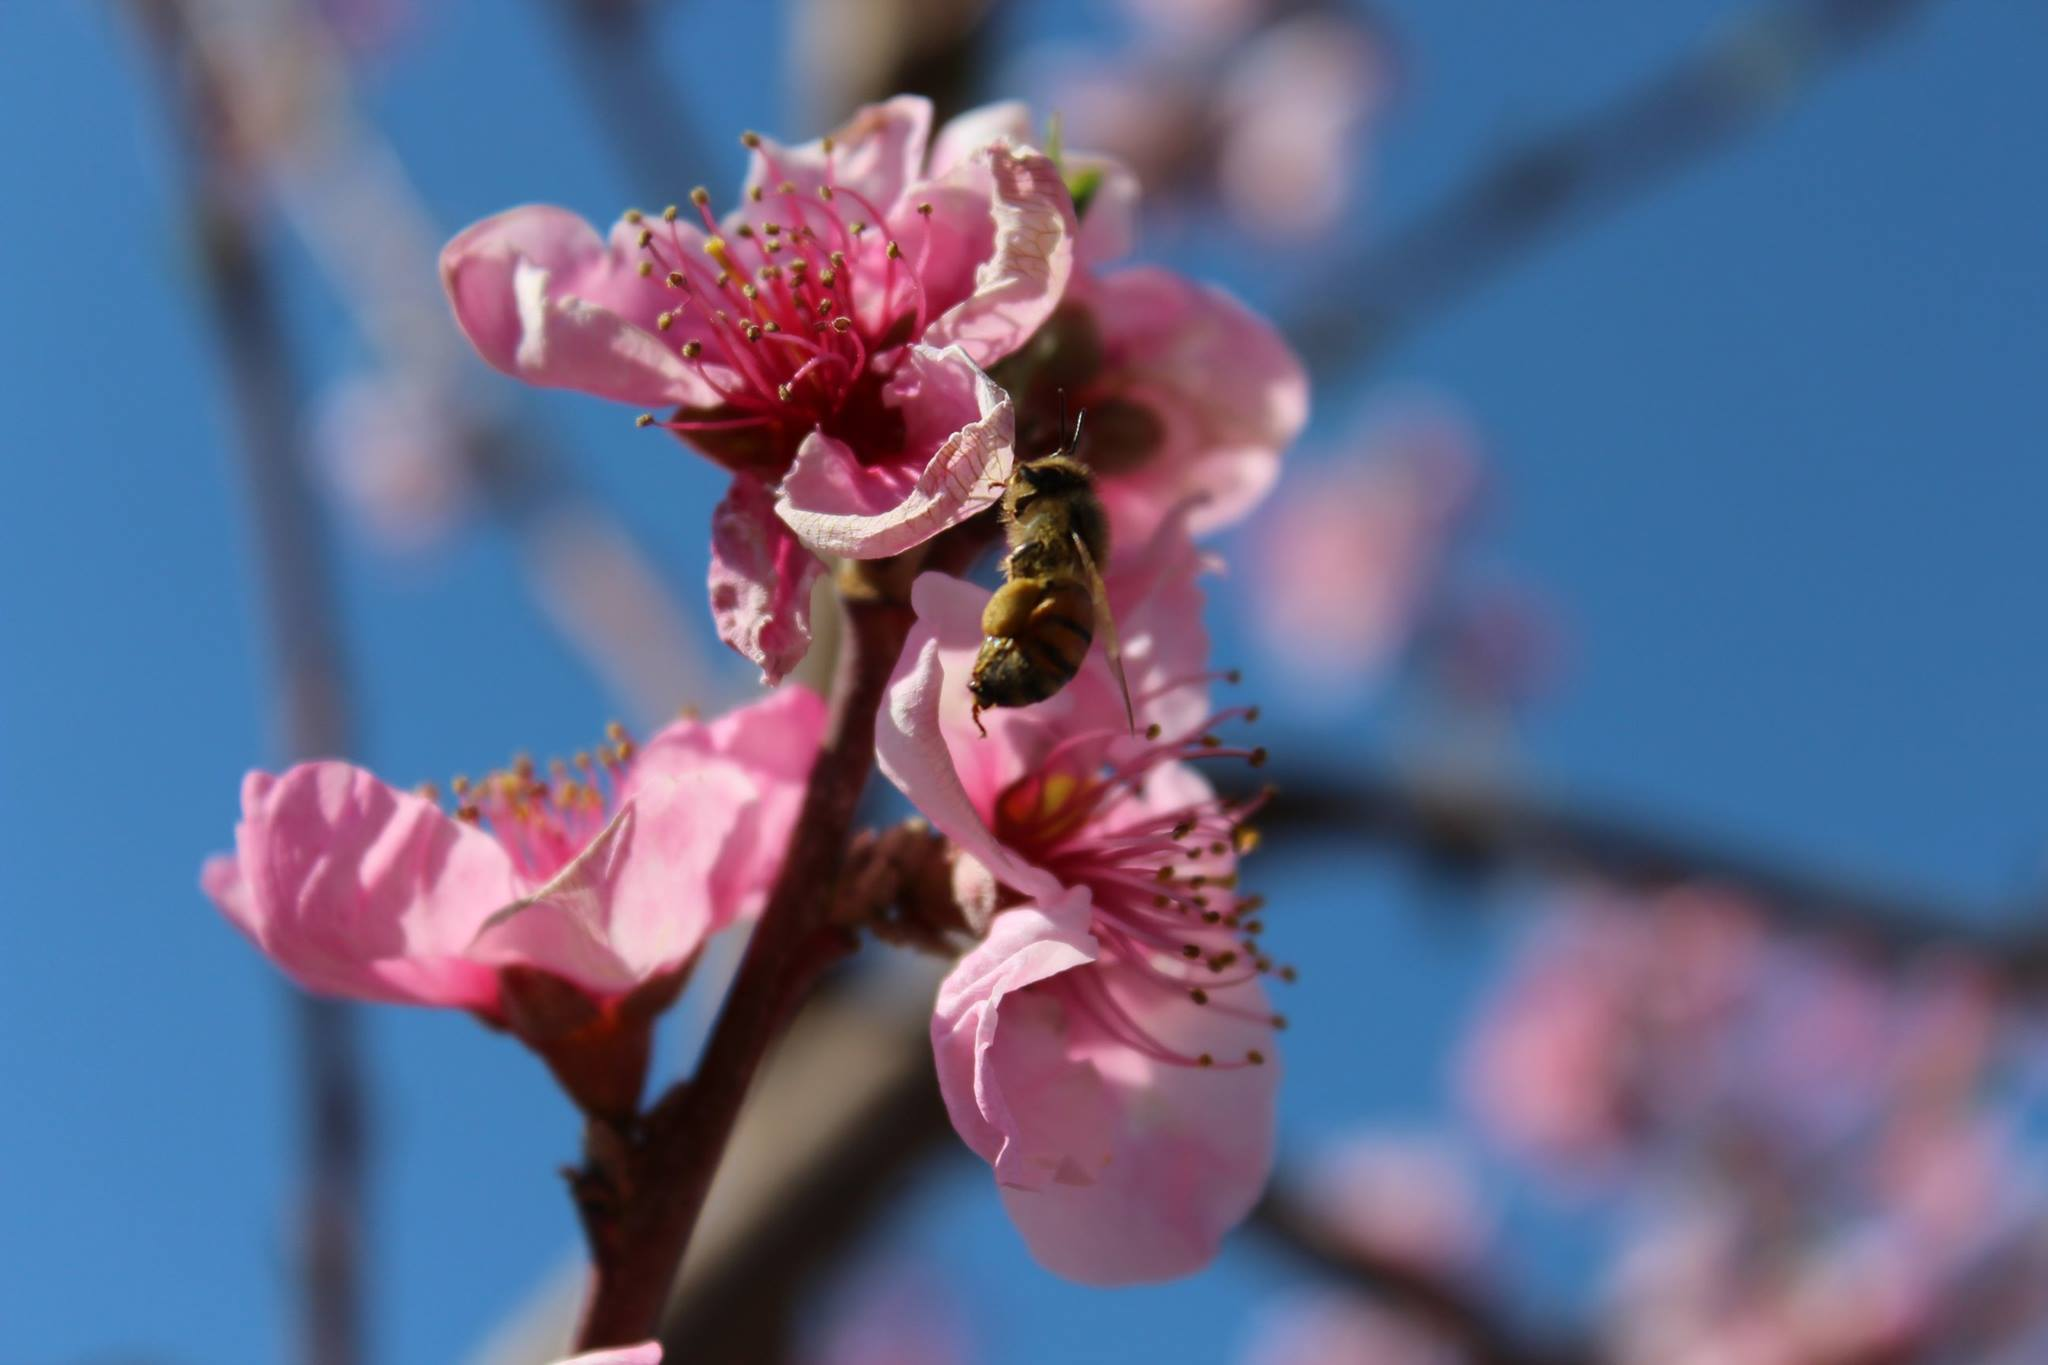 Honey bees thrive.